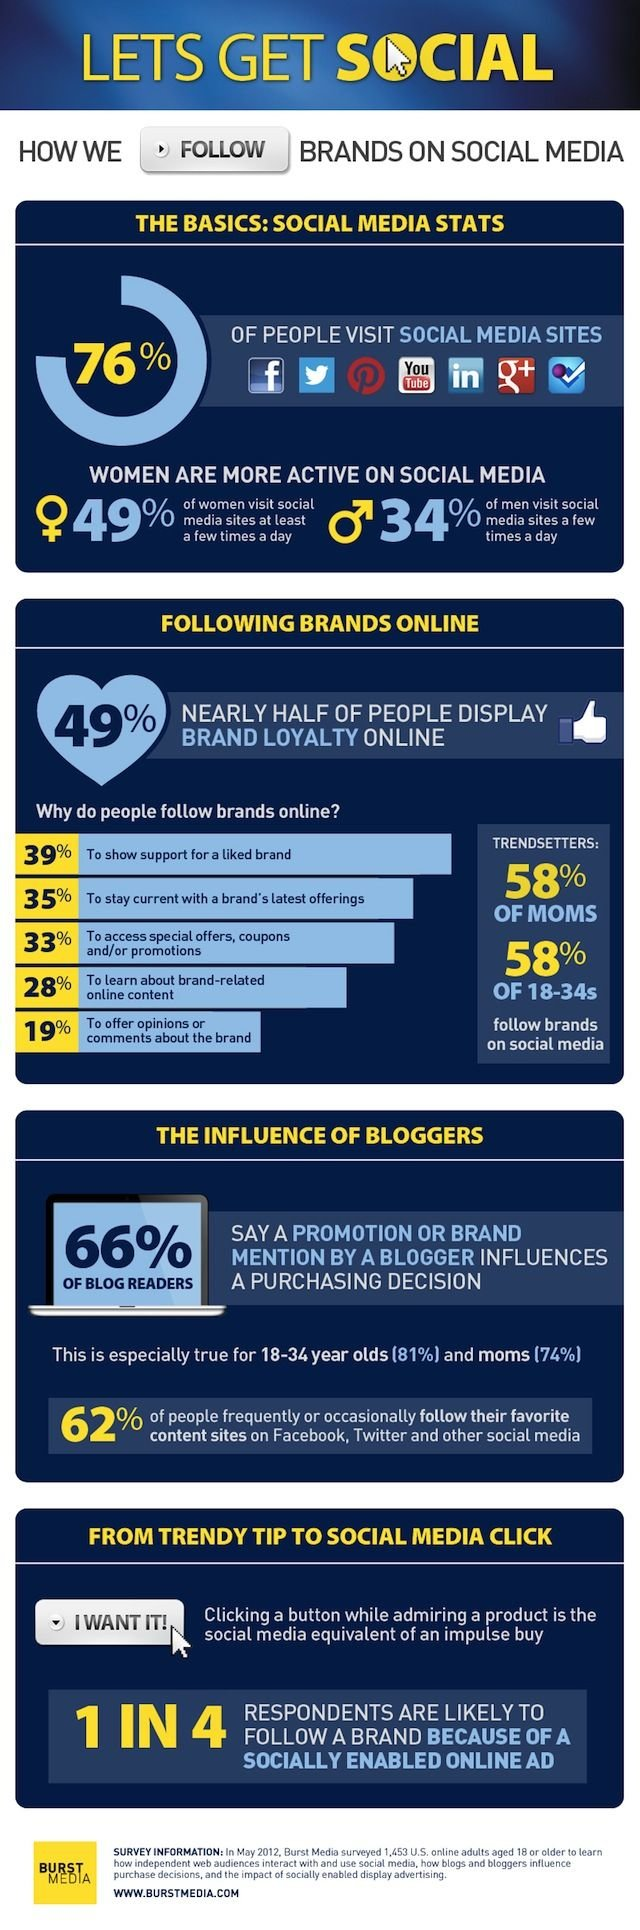 Let's Get Social: How we follow brands on social Media #infographic